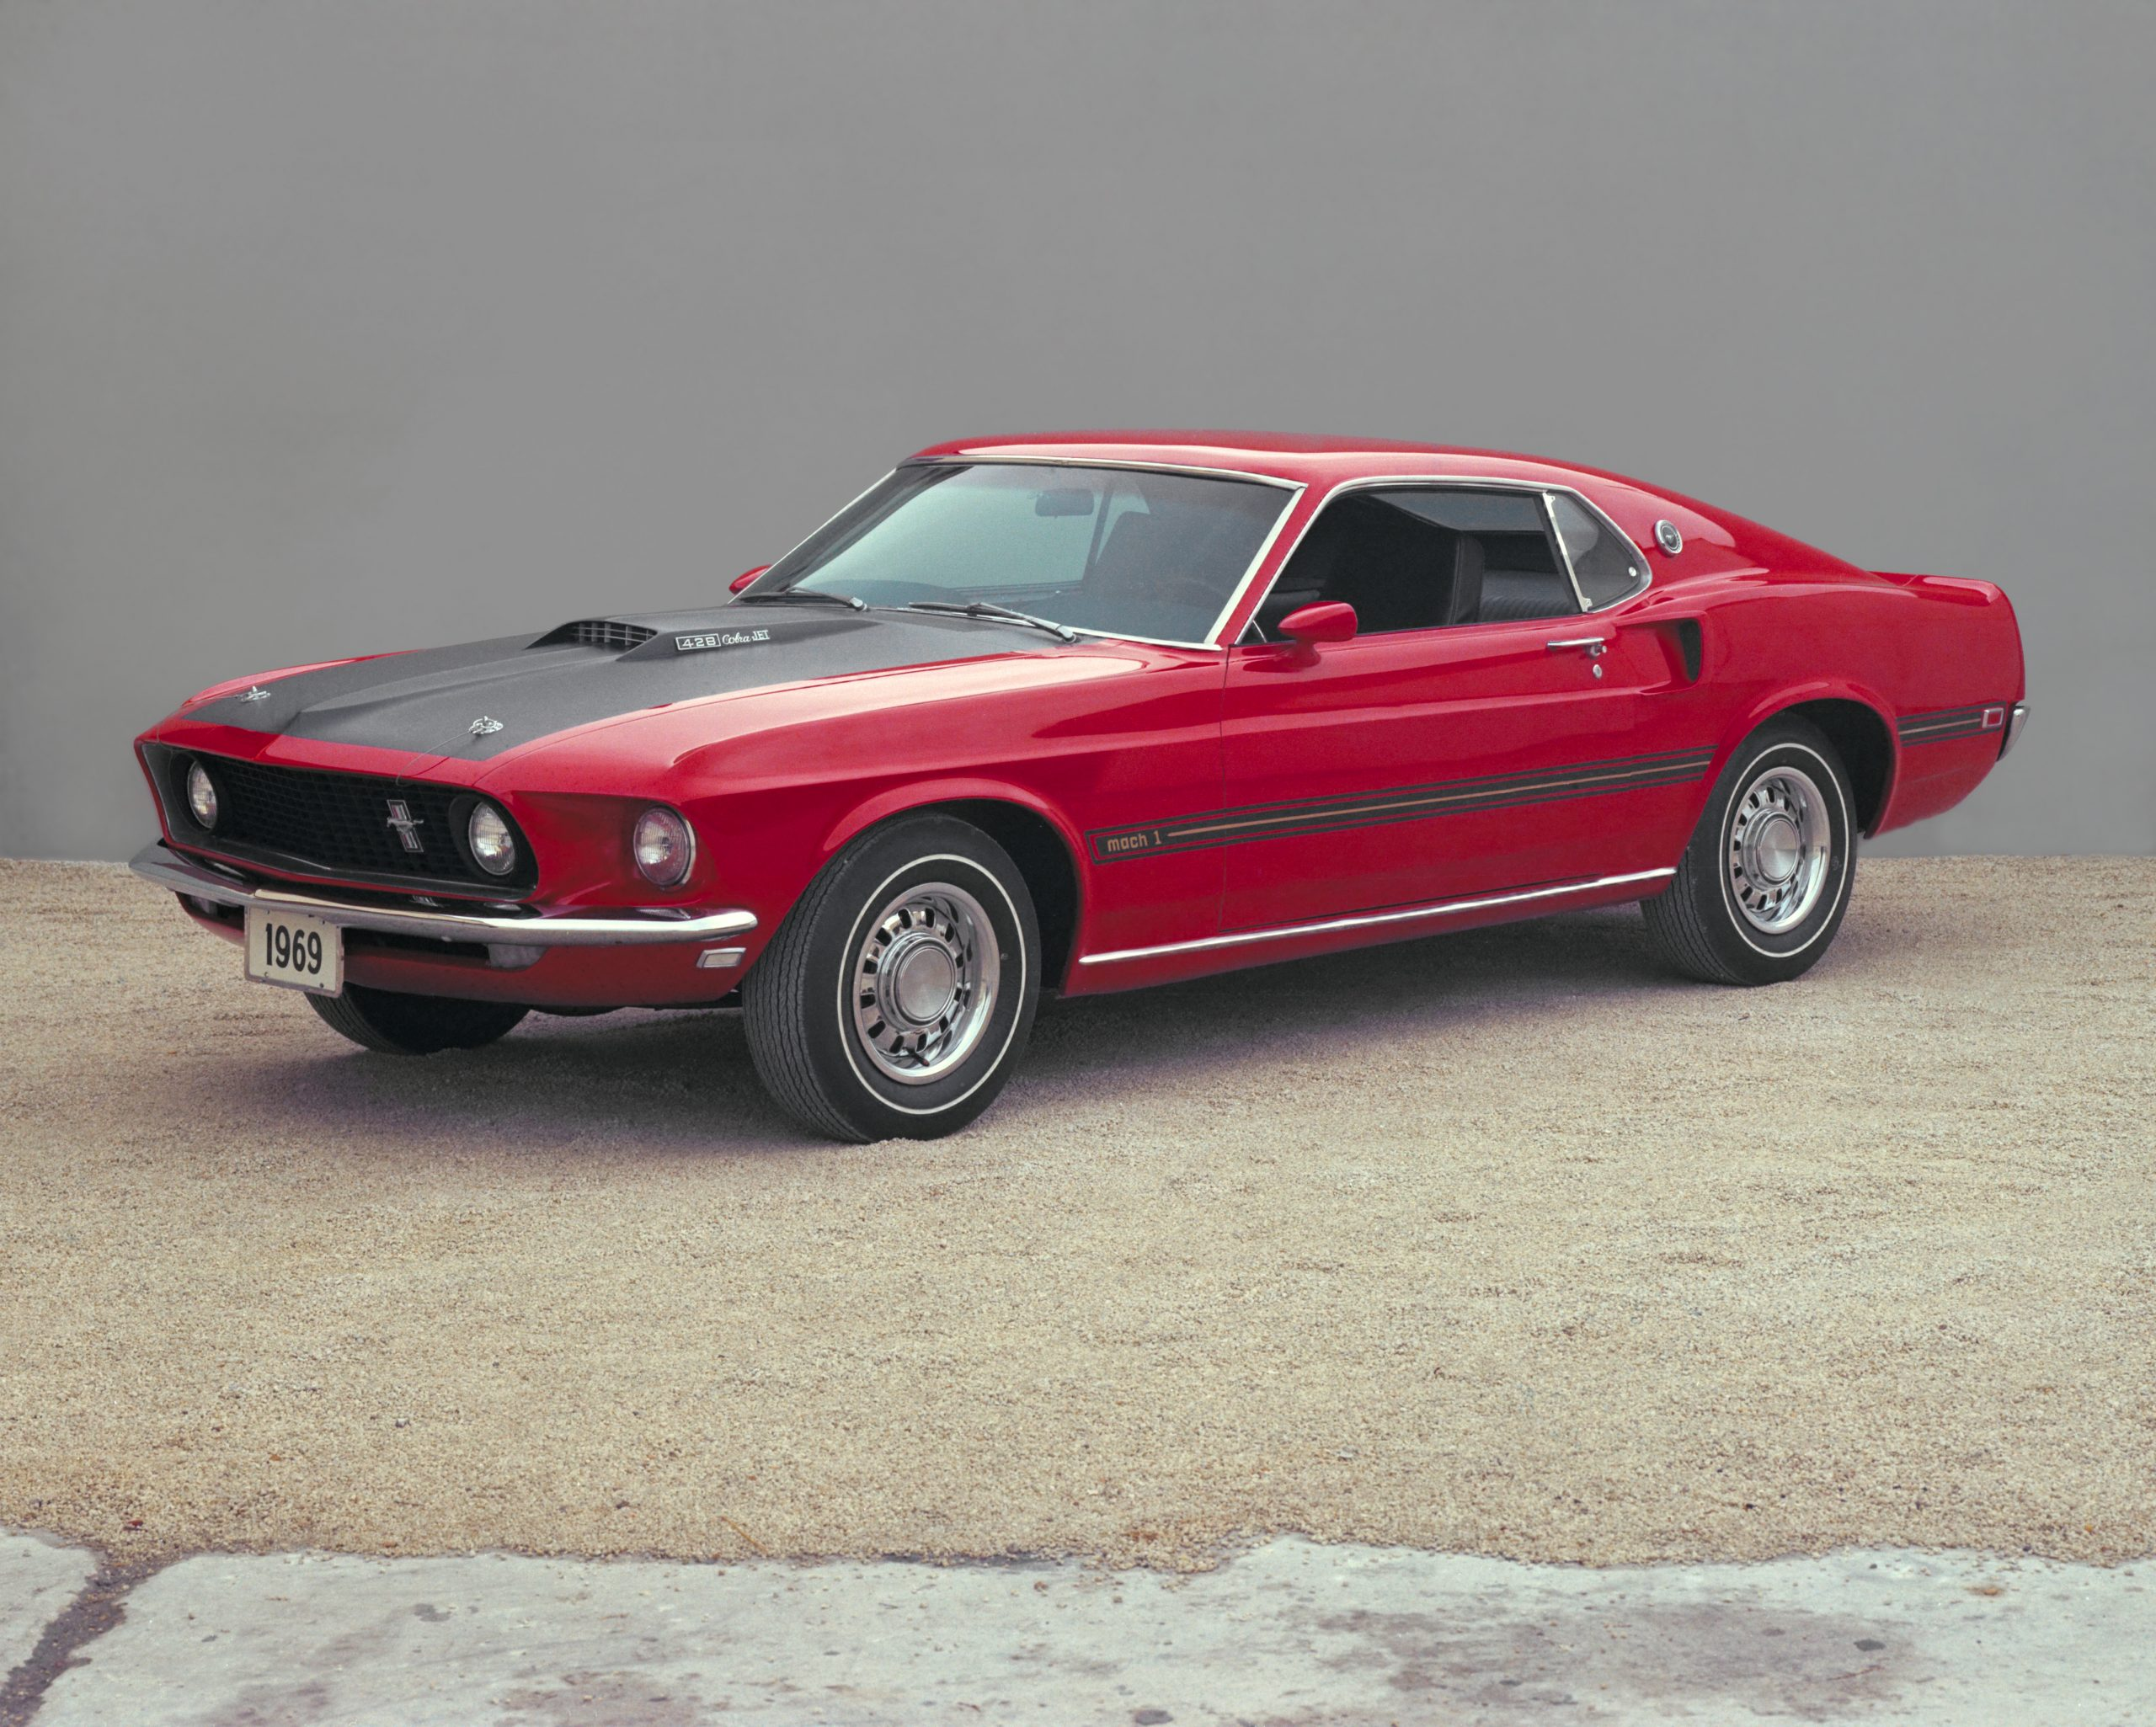 1969 Ford Mustang Mach 1 Fastback Front Three-Quarter